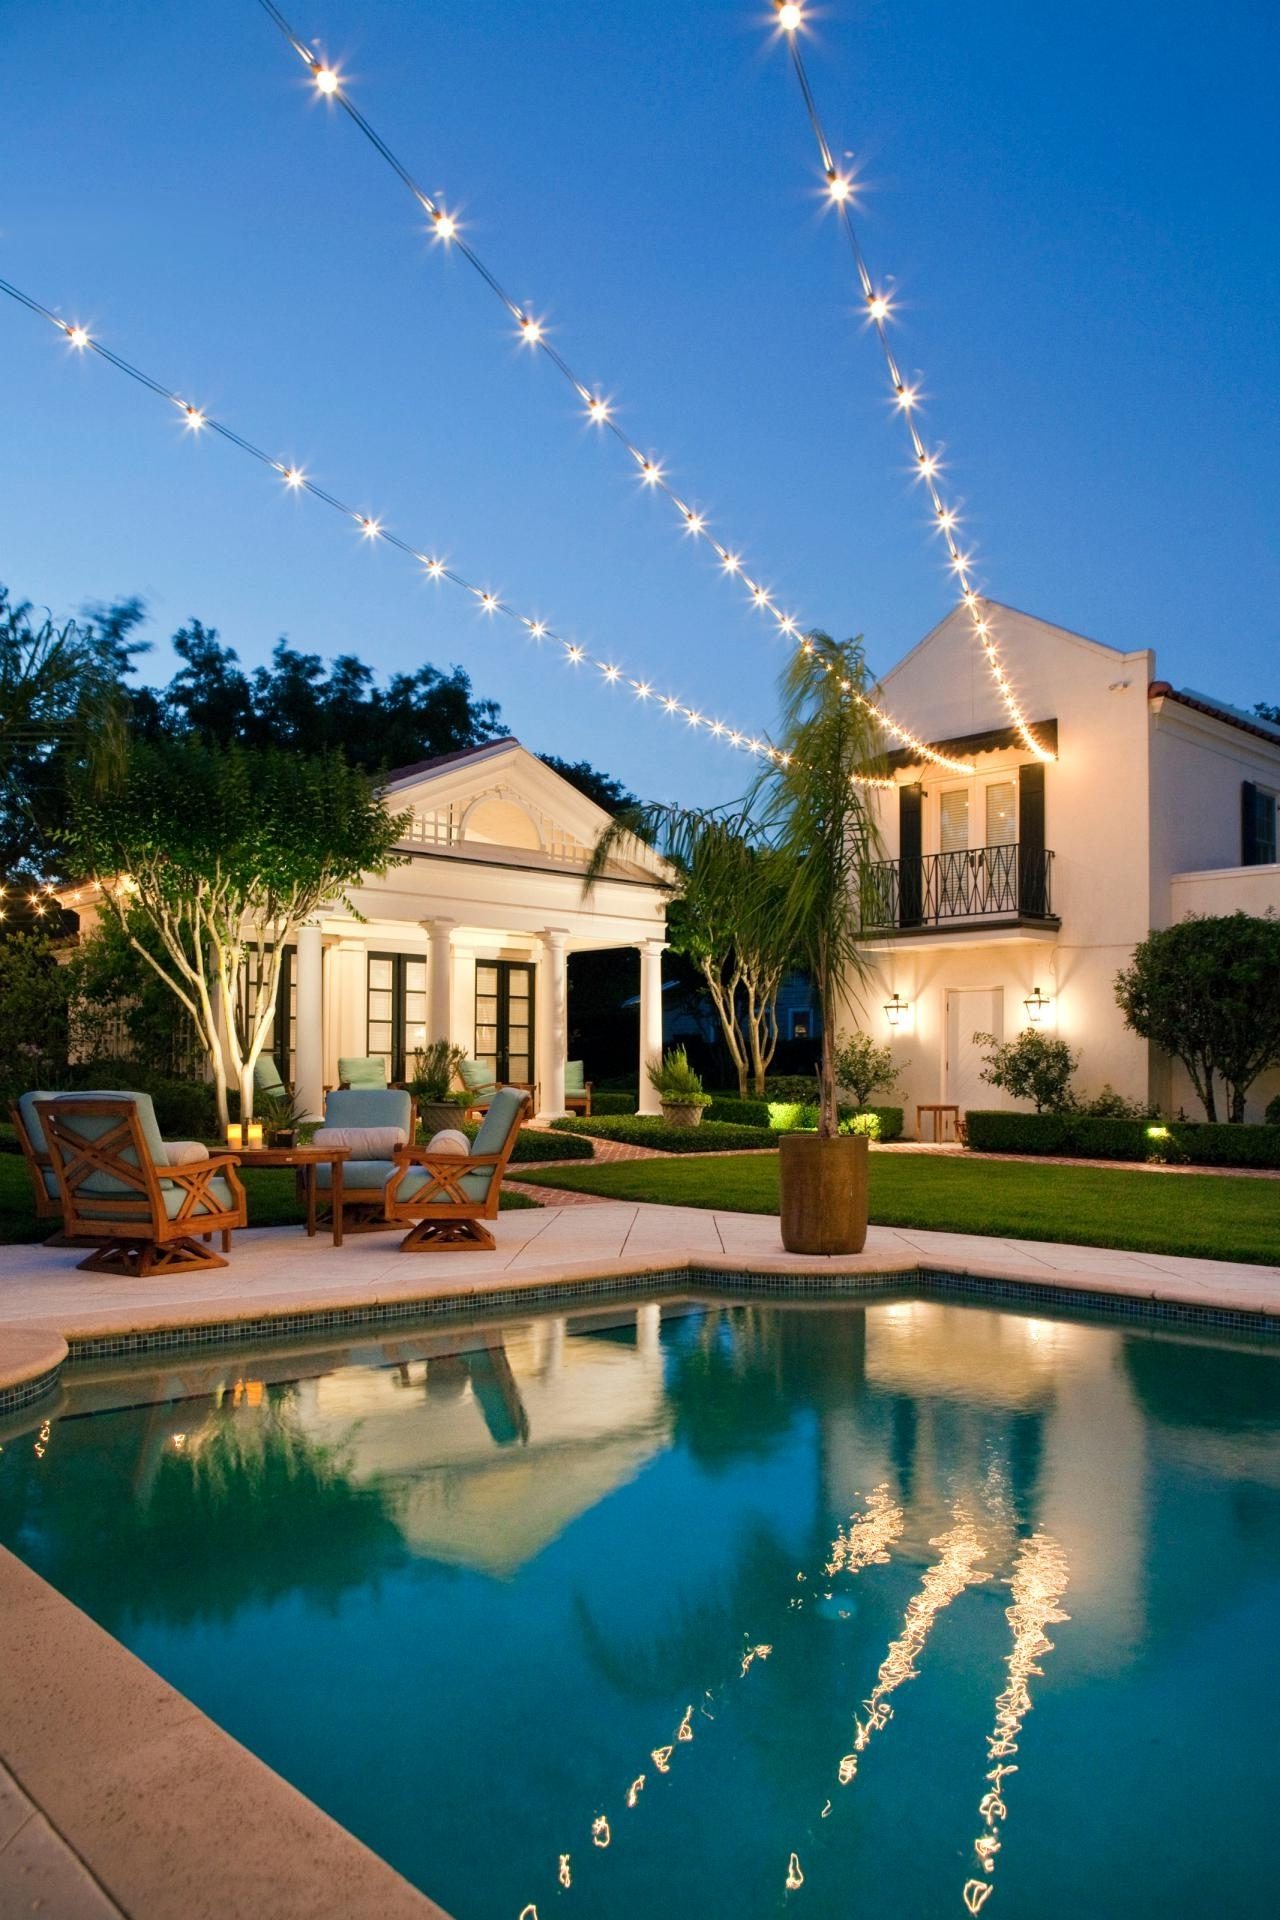 10 Ways To Amp Up Your Outdoor Space With String Lights (Gallery 11 of 20)